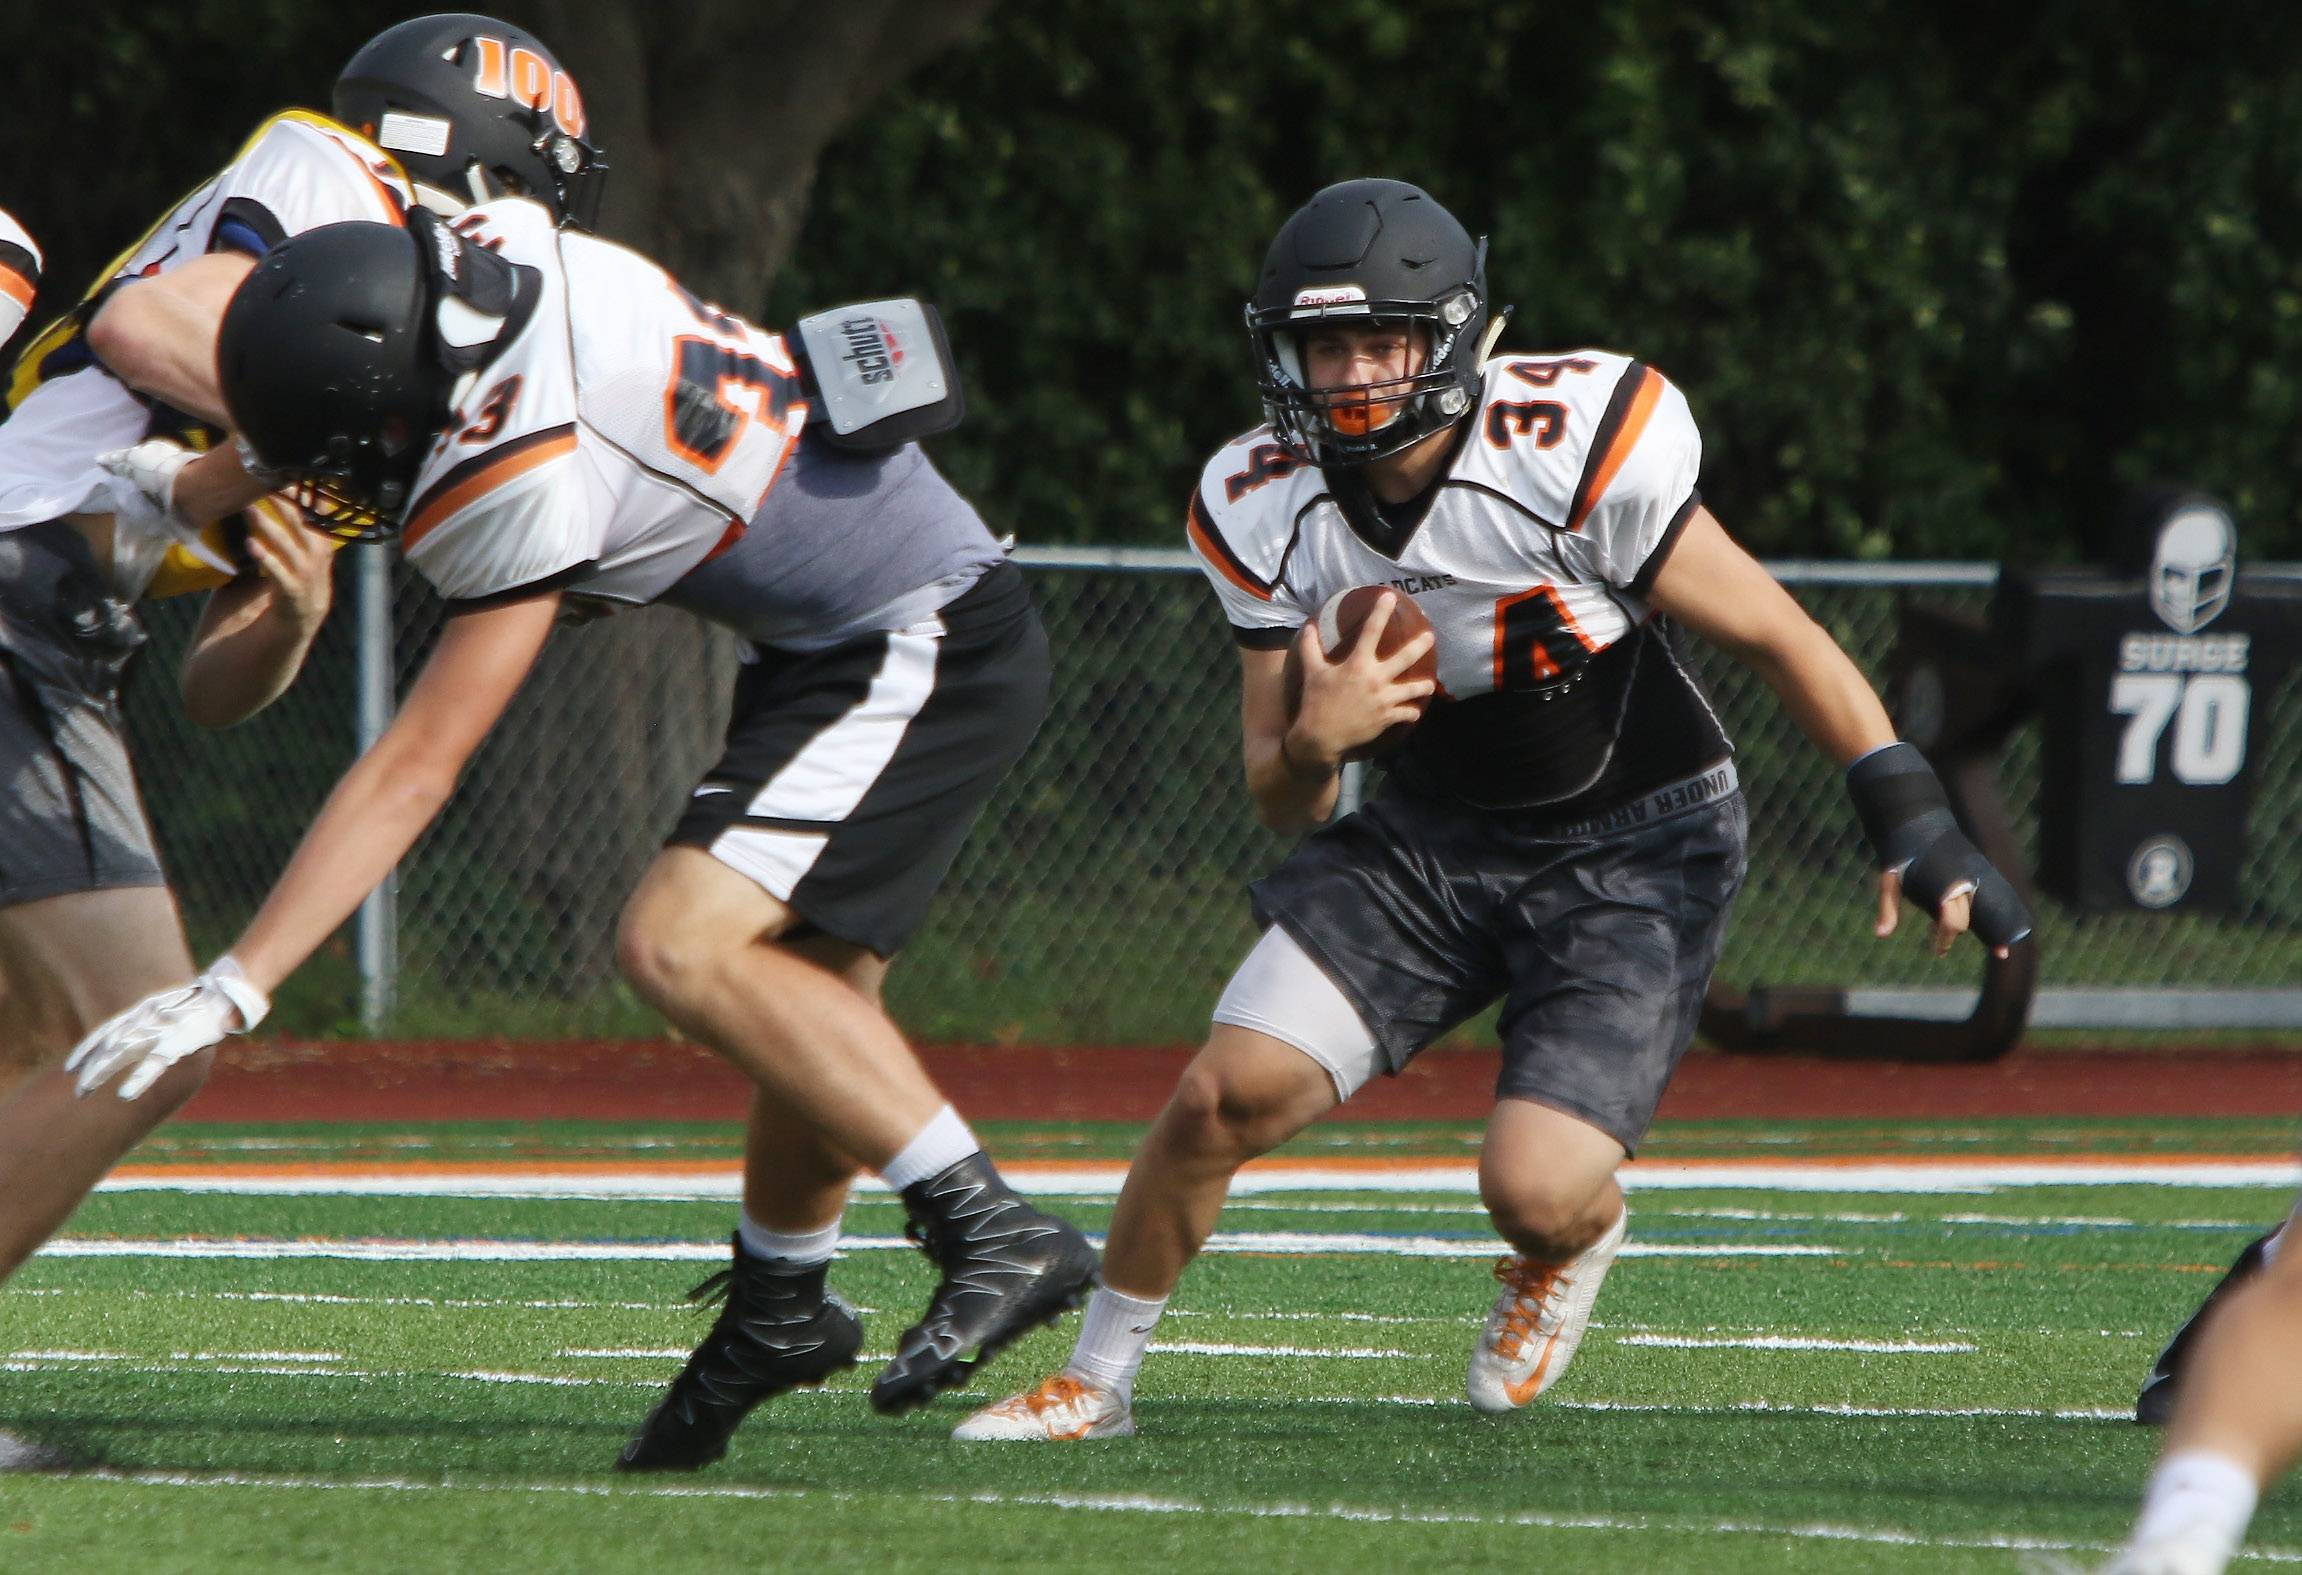 Running back Brendan Bazar runs with the ball during football practice at Libertyville High School.